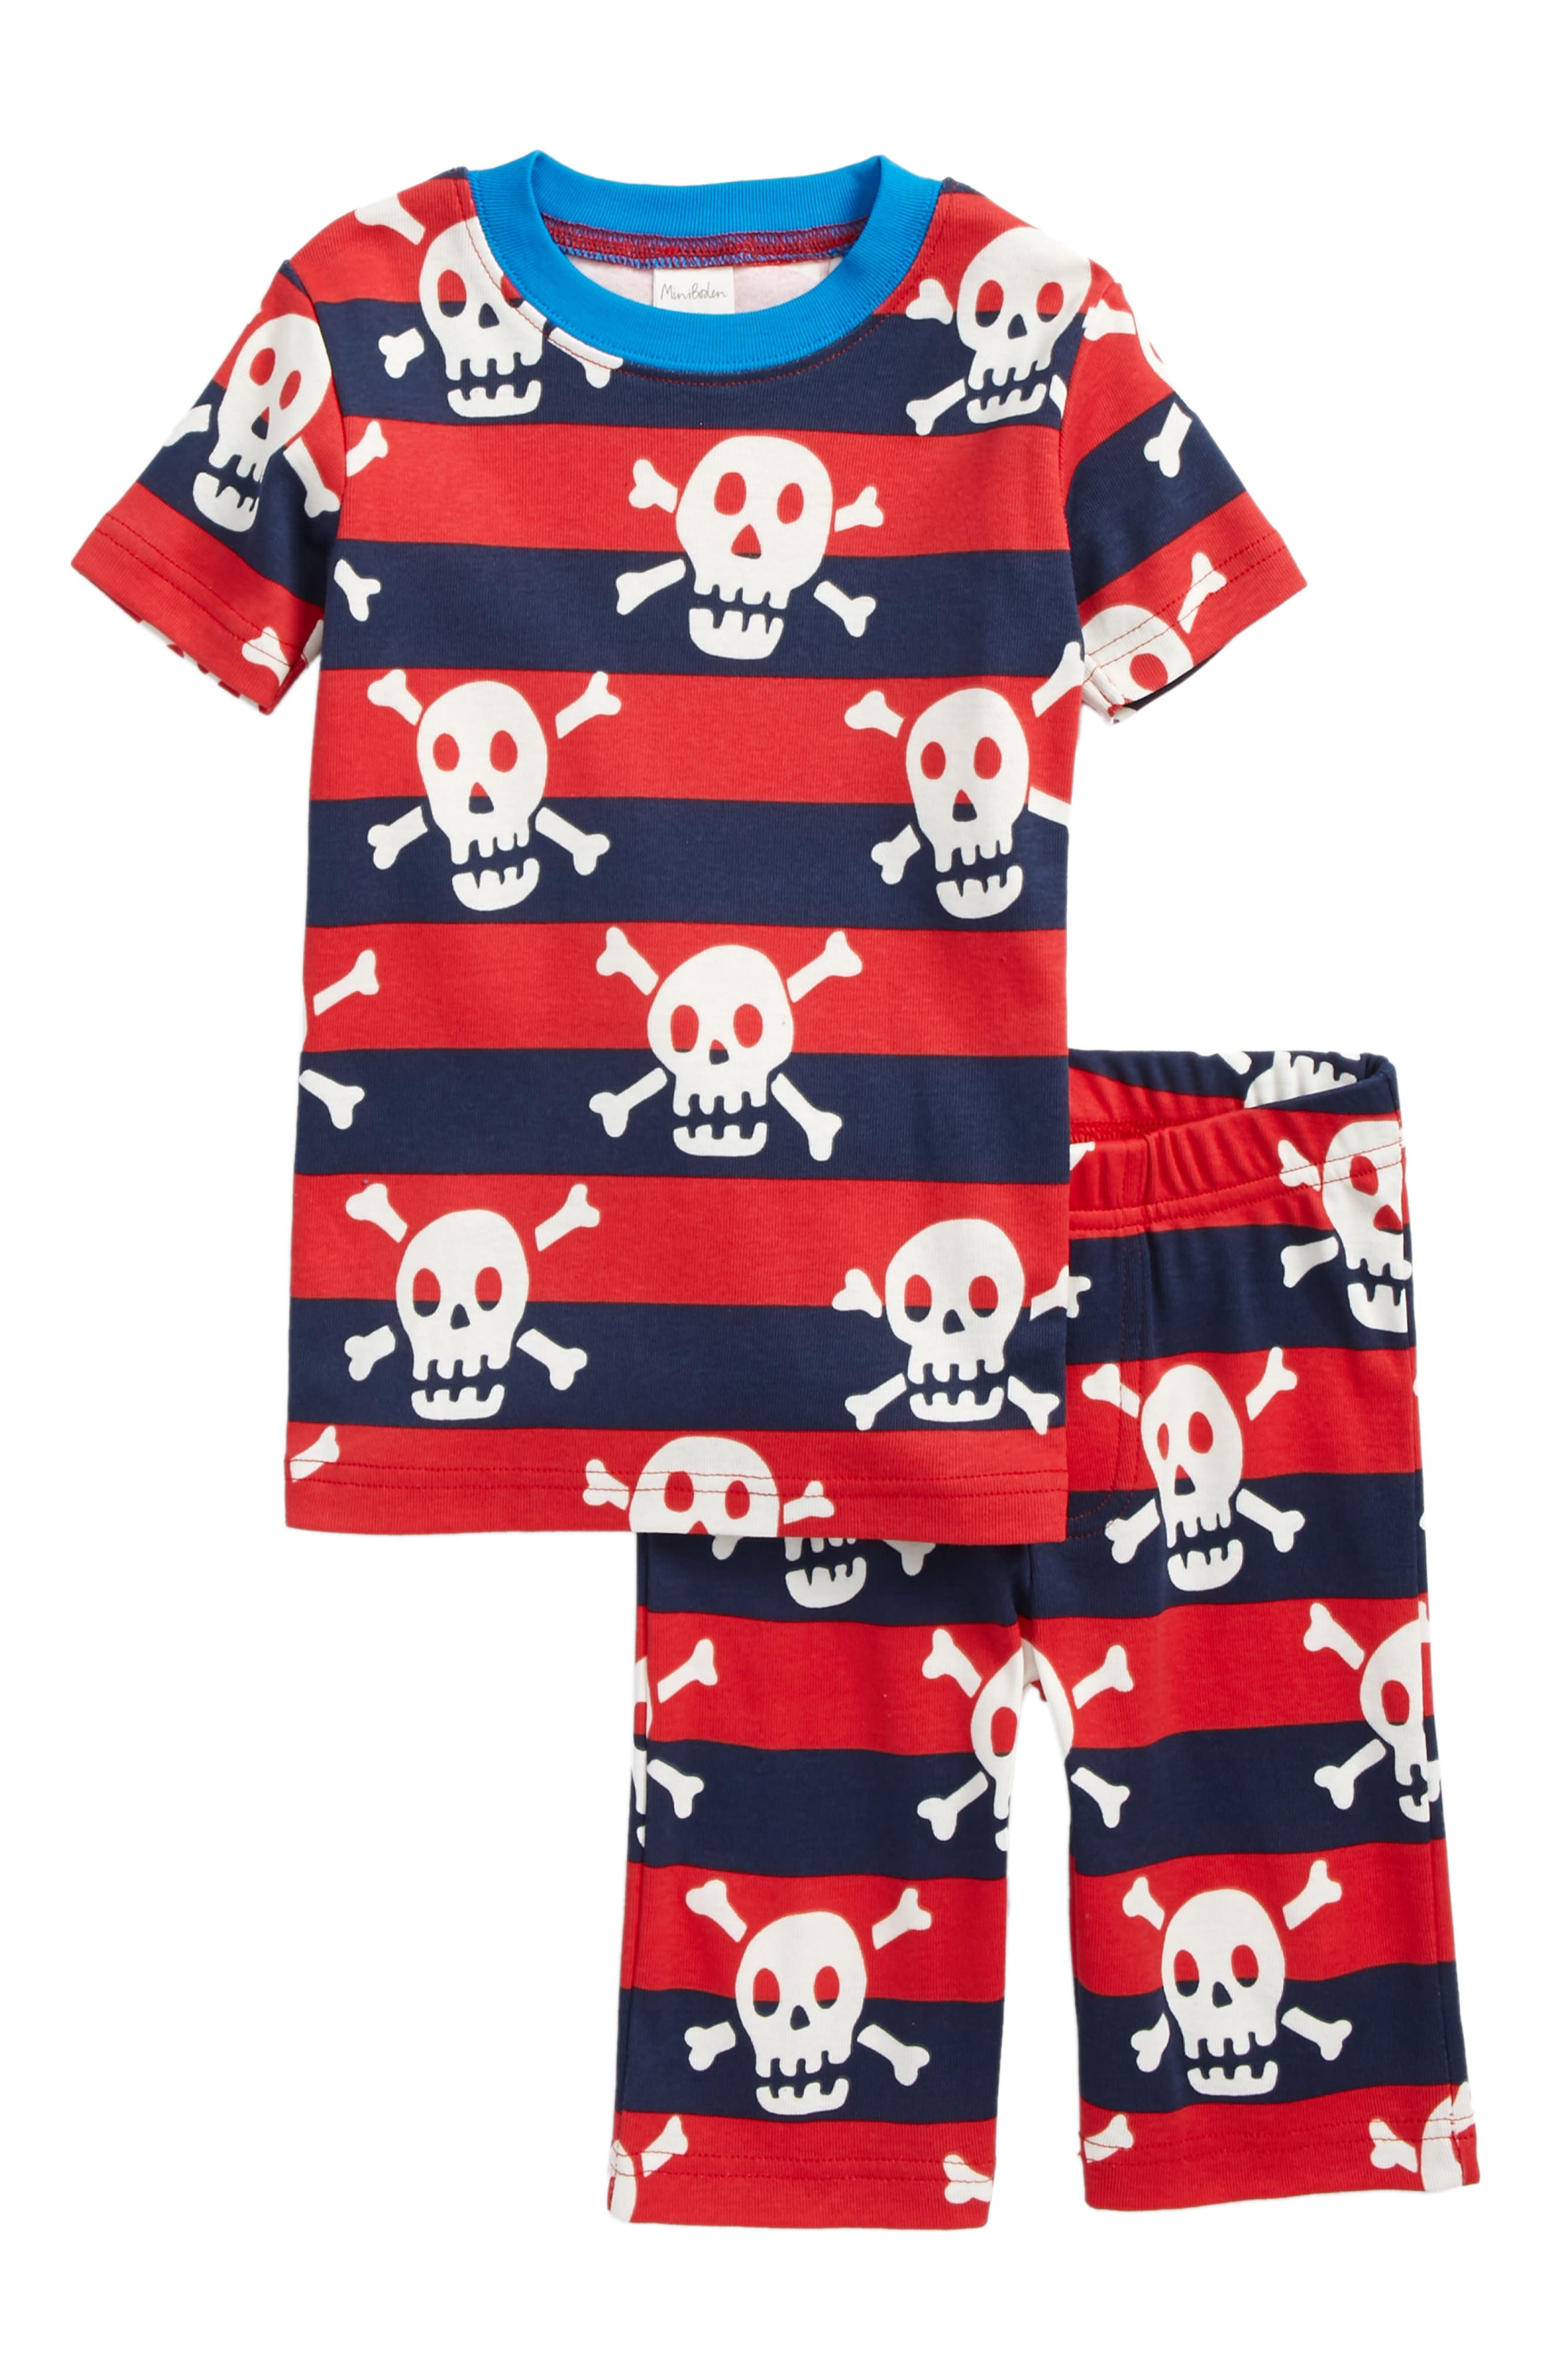 Glow in the Dark Fitted Two-Piece Pajamas,                         Main,                         color, Salsa Red/School Navy